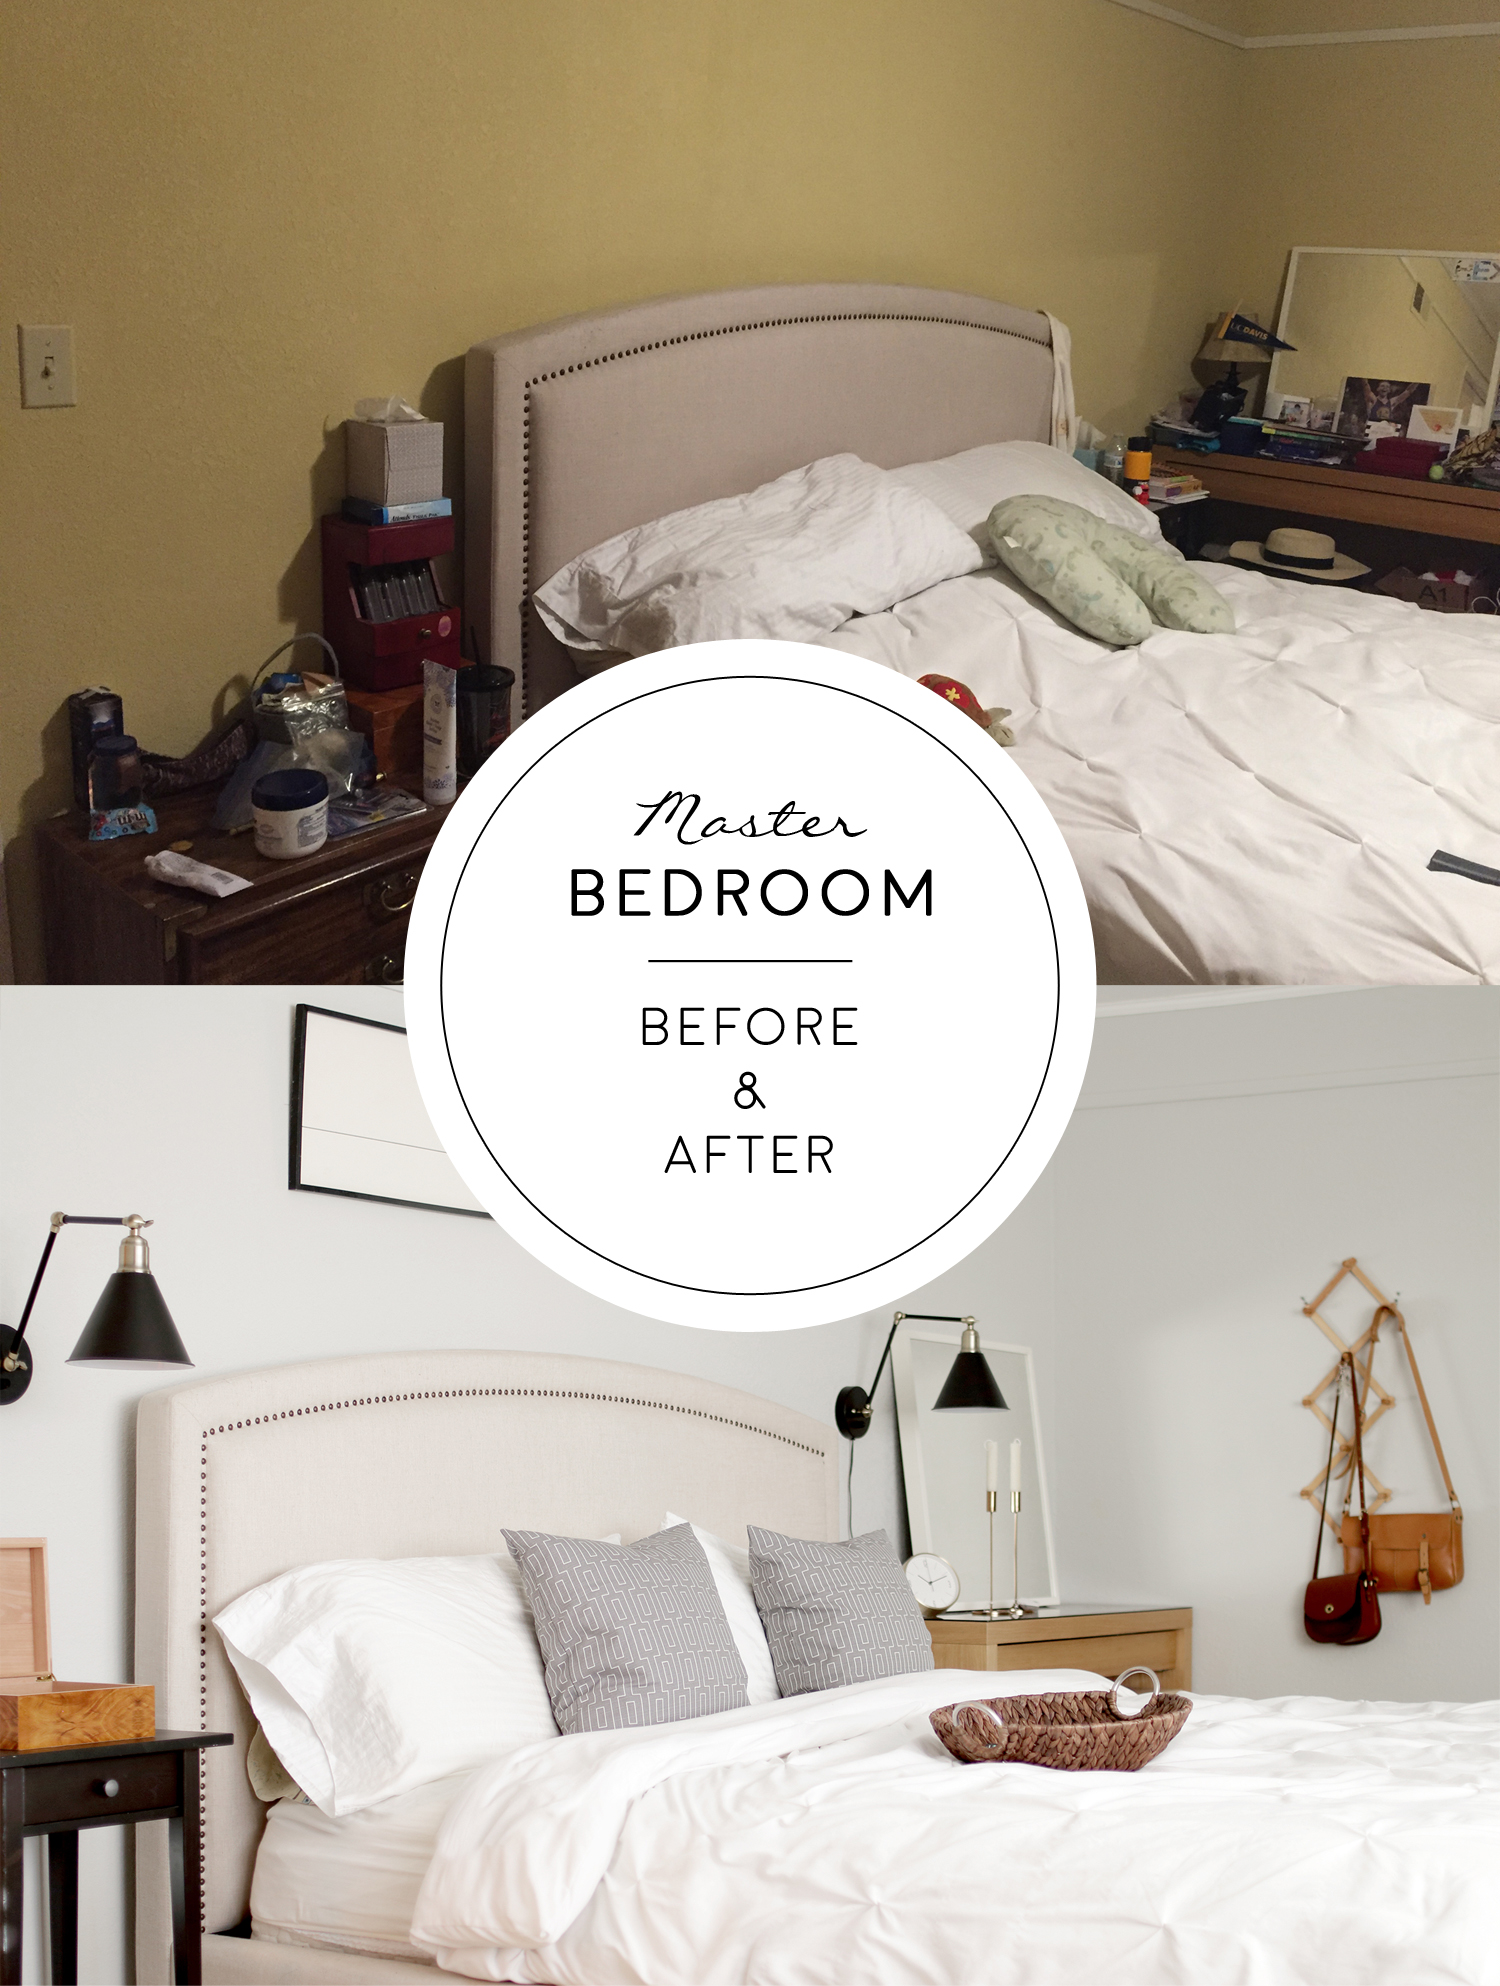 wong master bedroom before and after